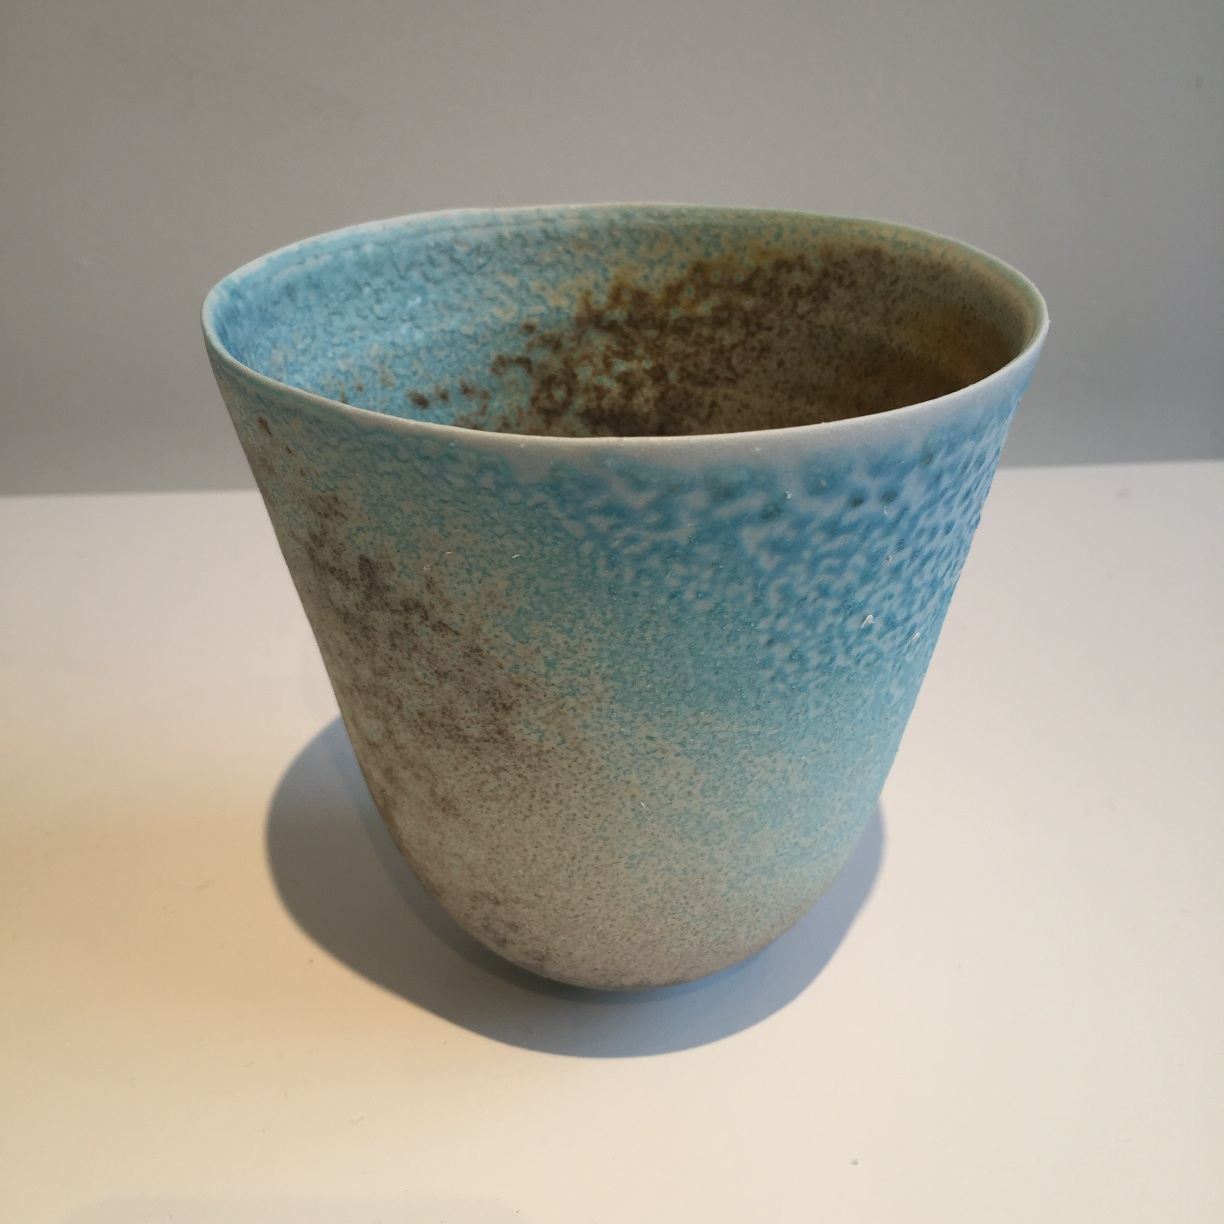 Jack Doherty, Conical Form 3, soda fired porcelain, 12 x 12cms, EUR 190